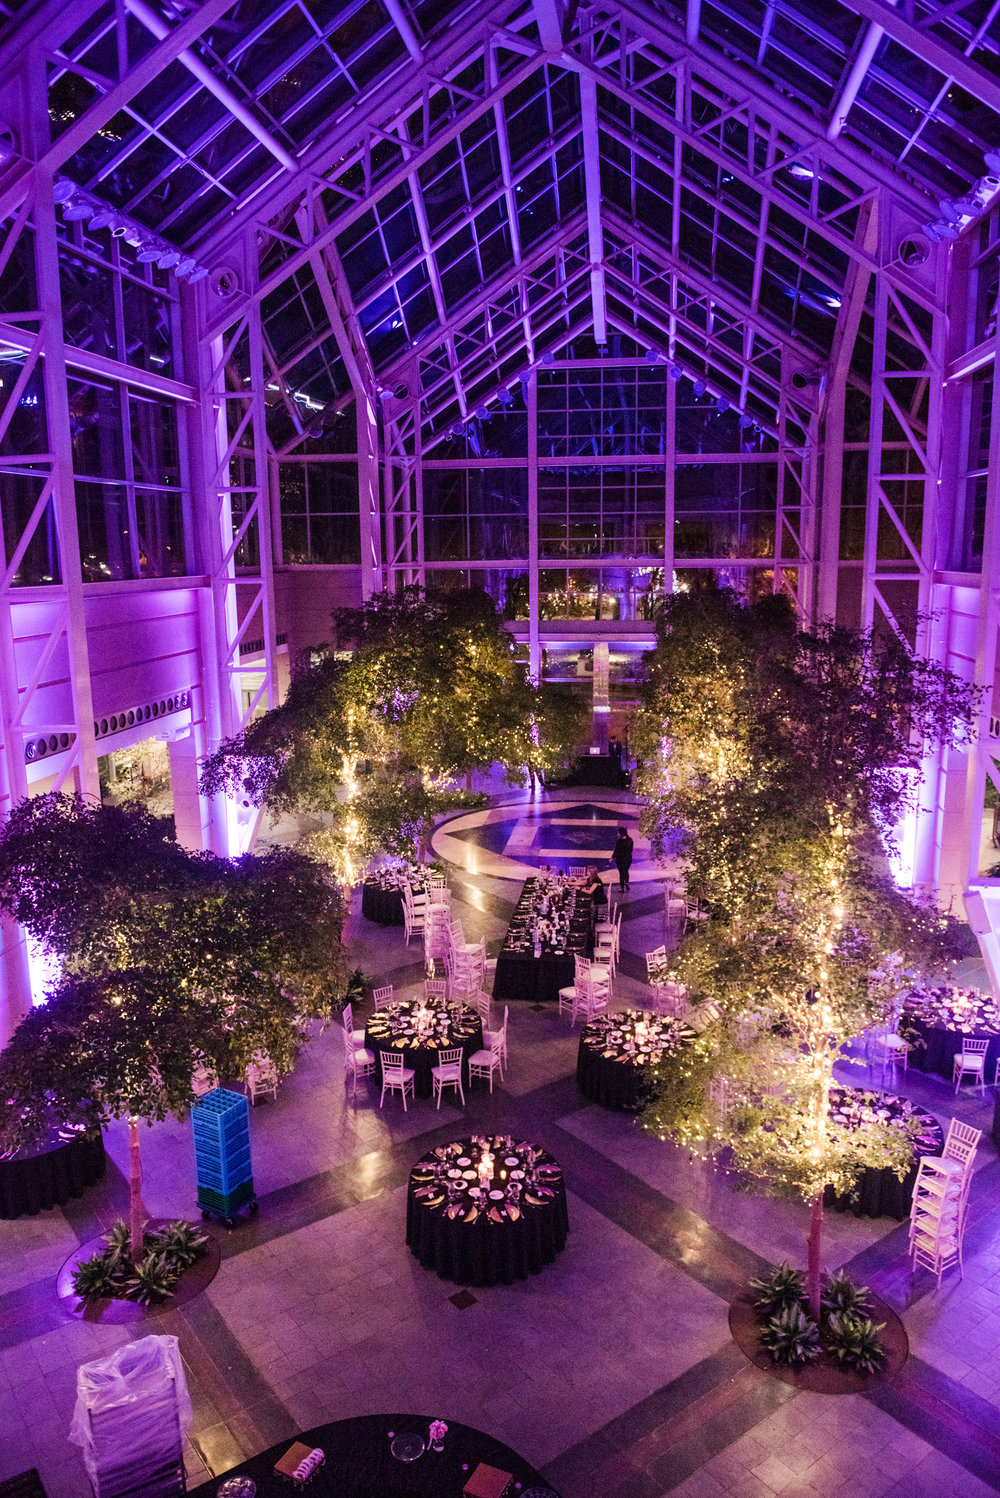 Wintergarden_by_Monroes_Rochester_Wedding_JILL_STUDIO_Rochester_NY_Photographer_190528.jpg